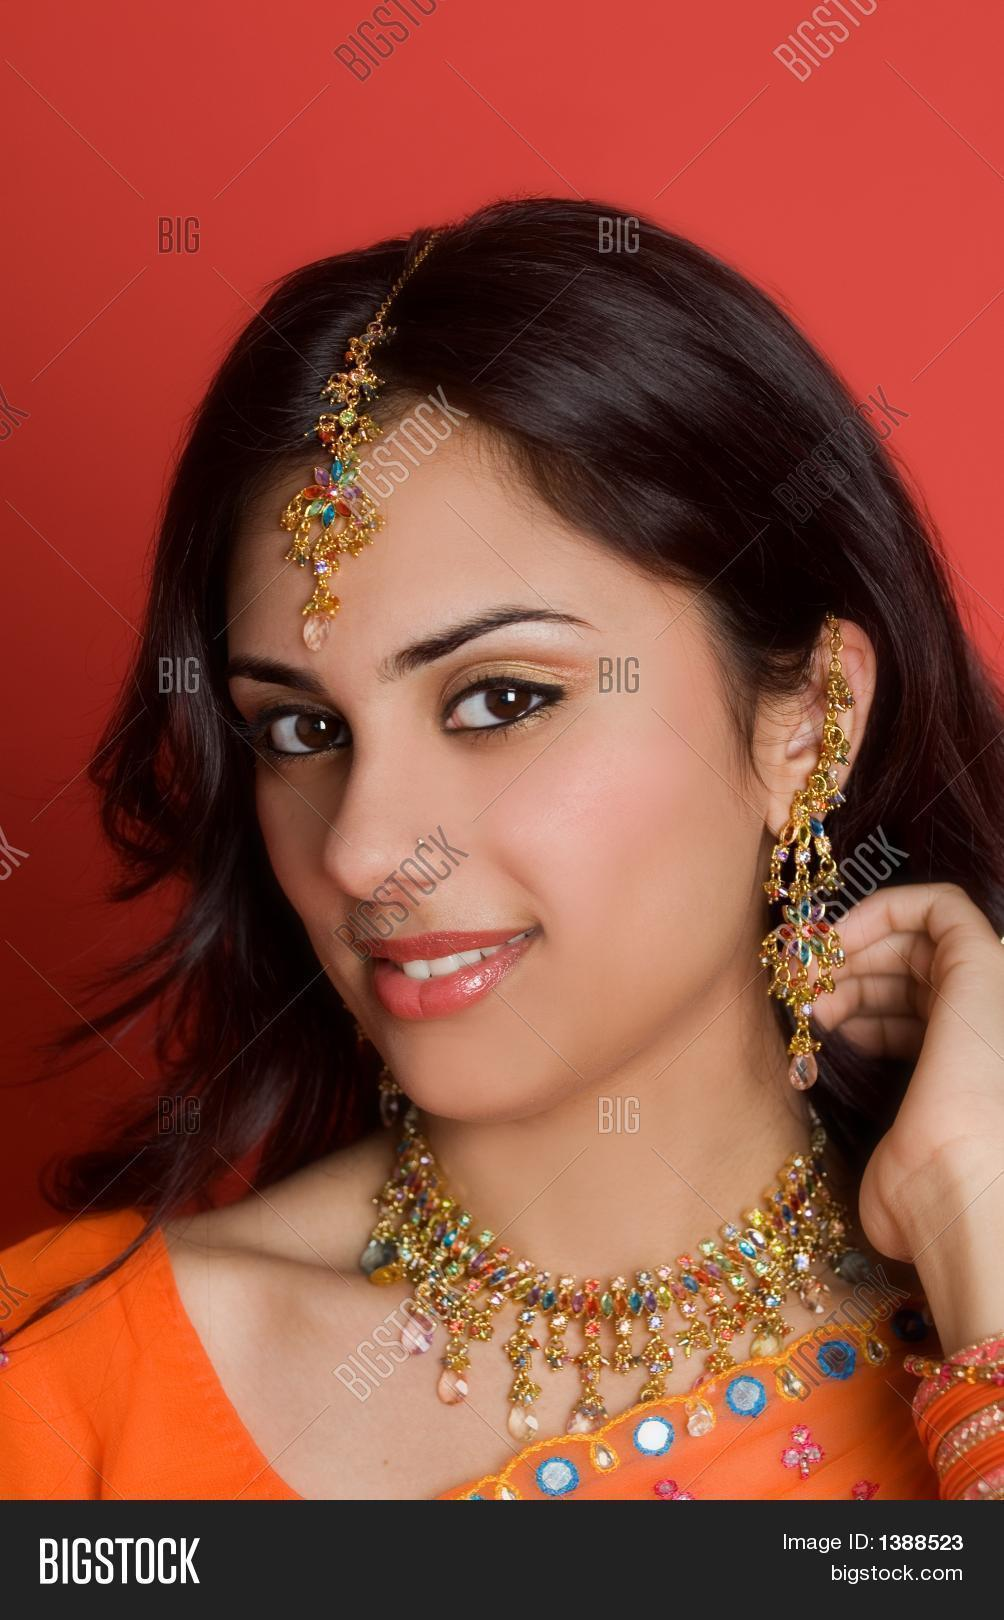 idanha hindu single women Looking for single women over 50 in idanha interested in dating millions of singles use zoosk online dating signup now and join the fun.